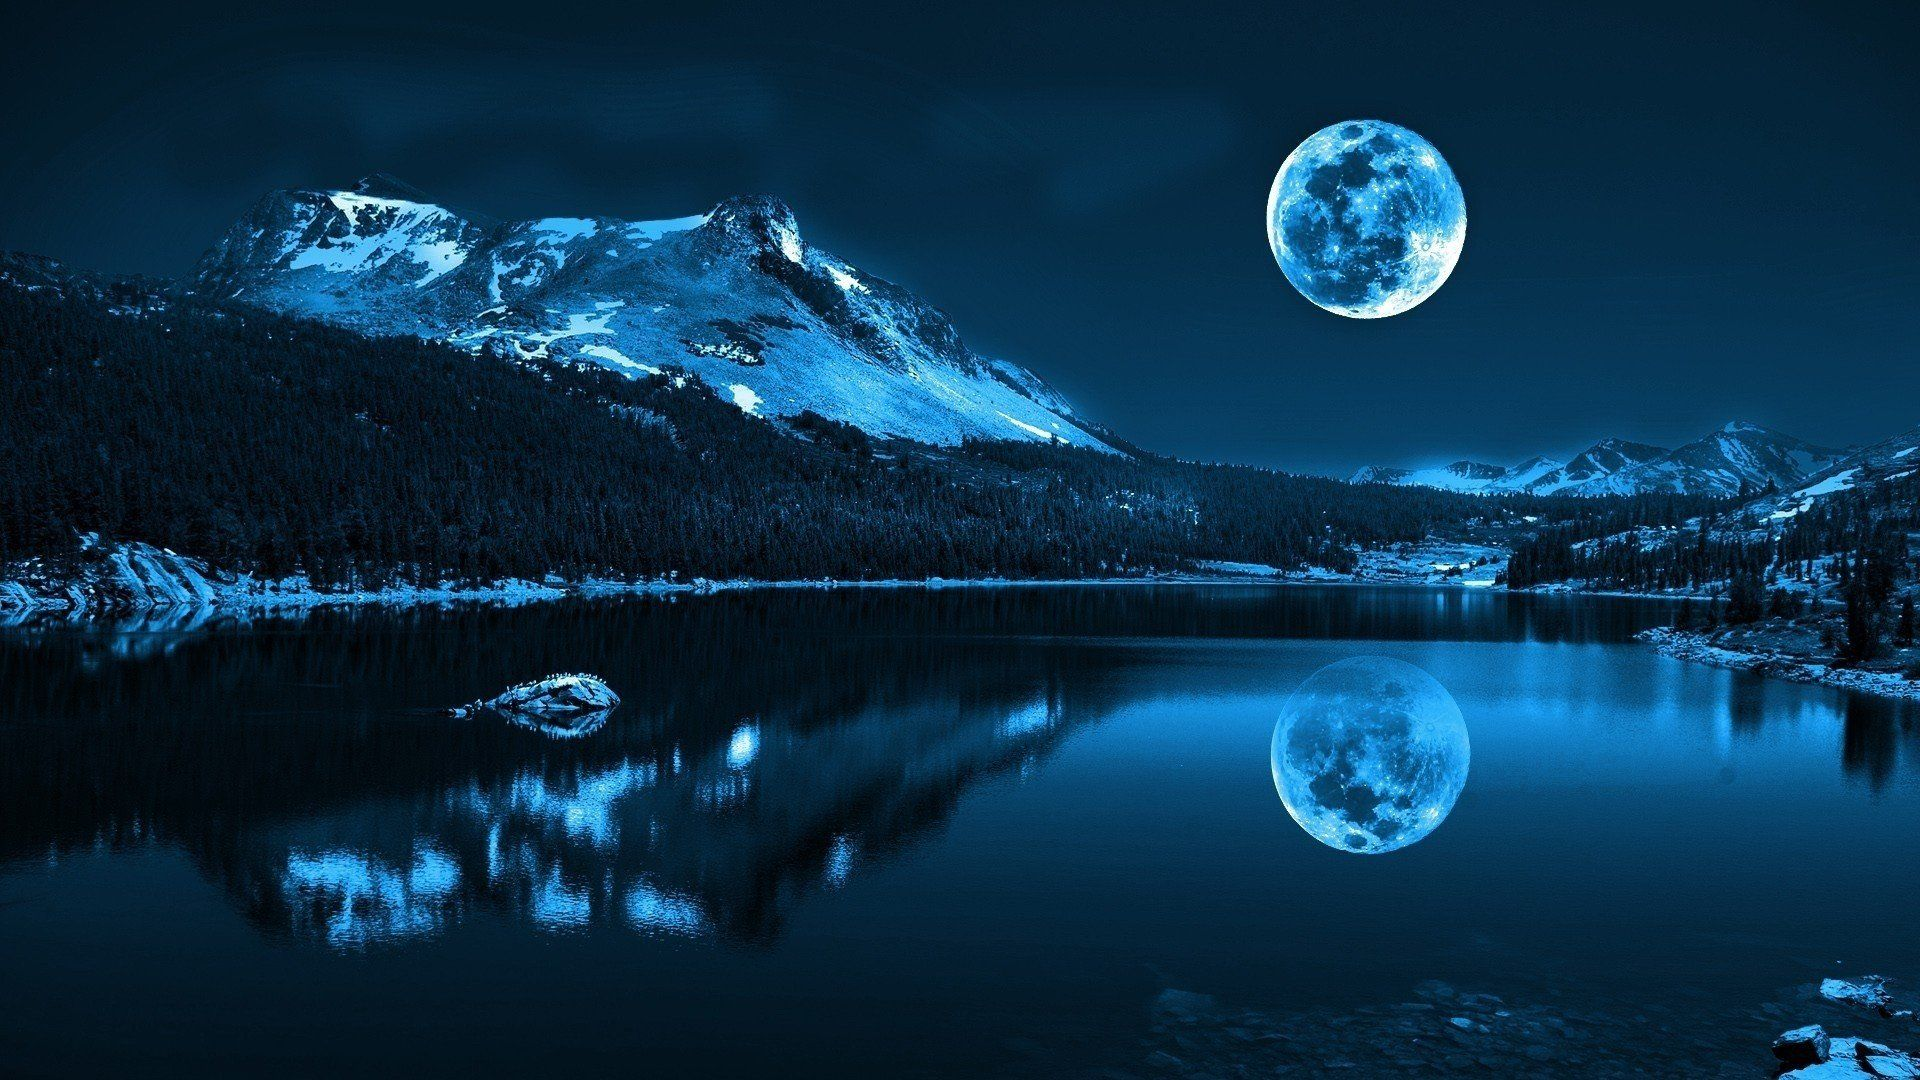 Blue Moon High Definition Wallpaper Cool Desktop Backgrounds Cool Desktop Hd Wallpapers For Laptop